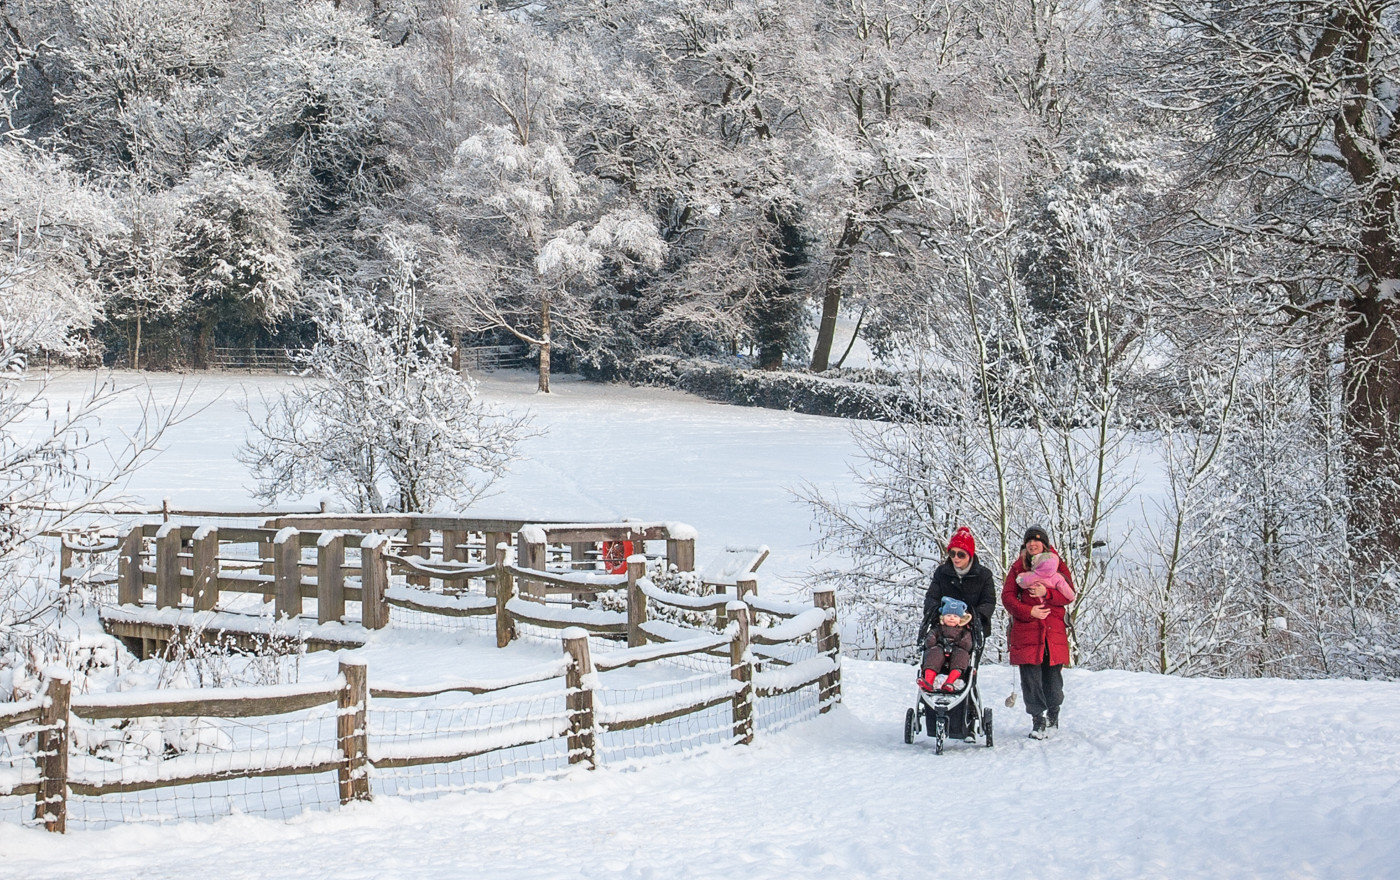 STROLLING IN THE SNOW by Roger Wates